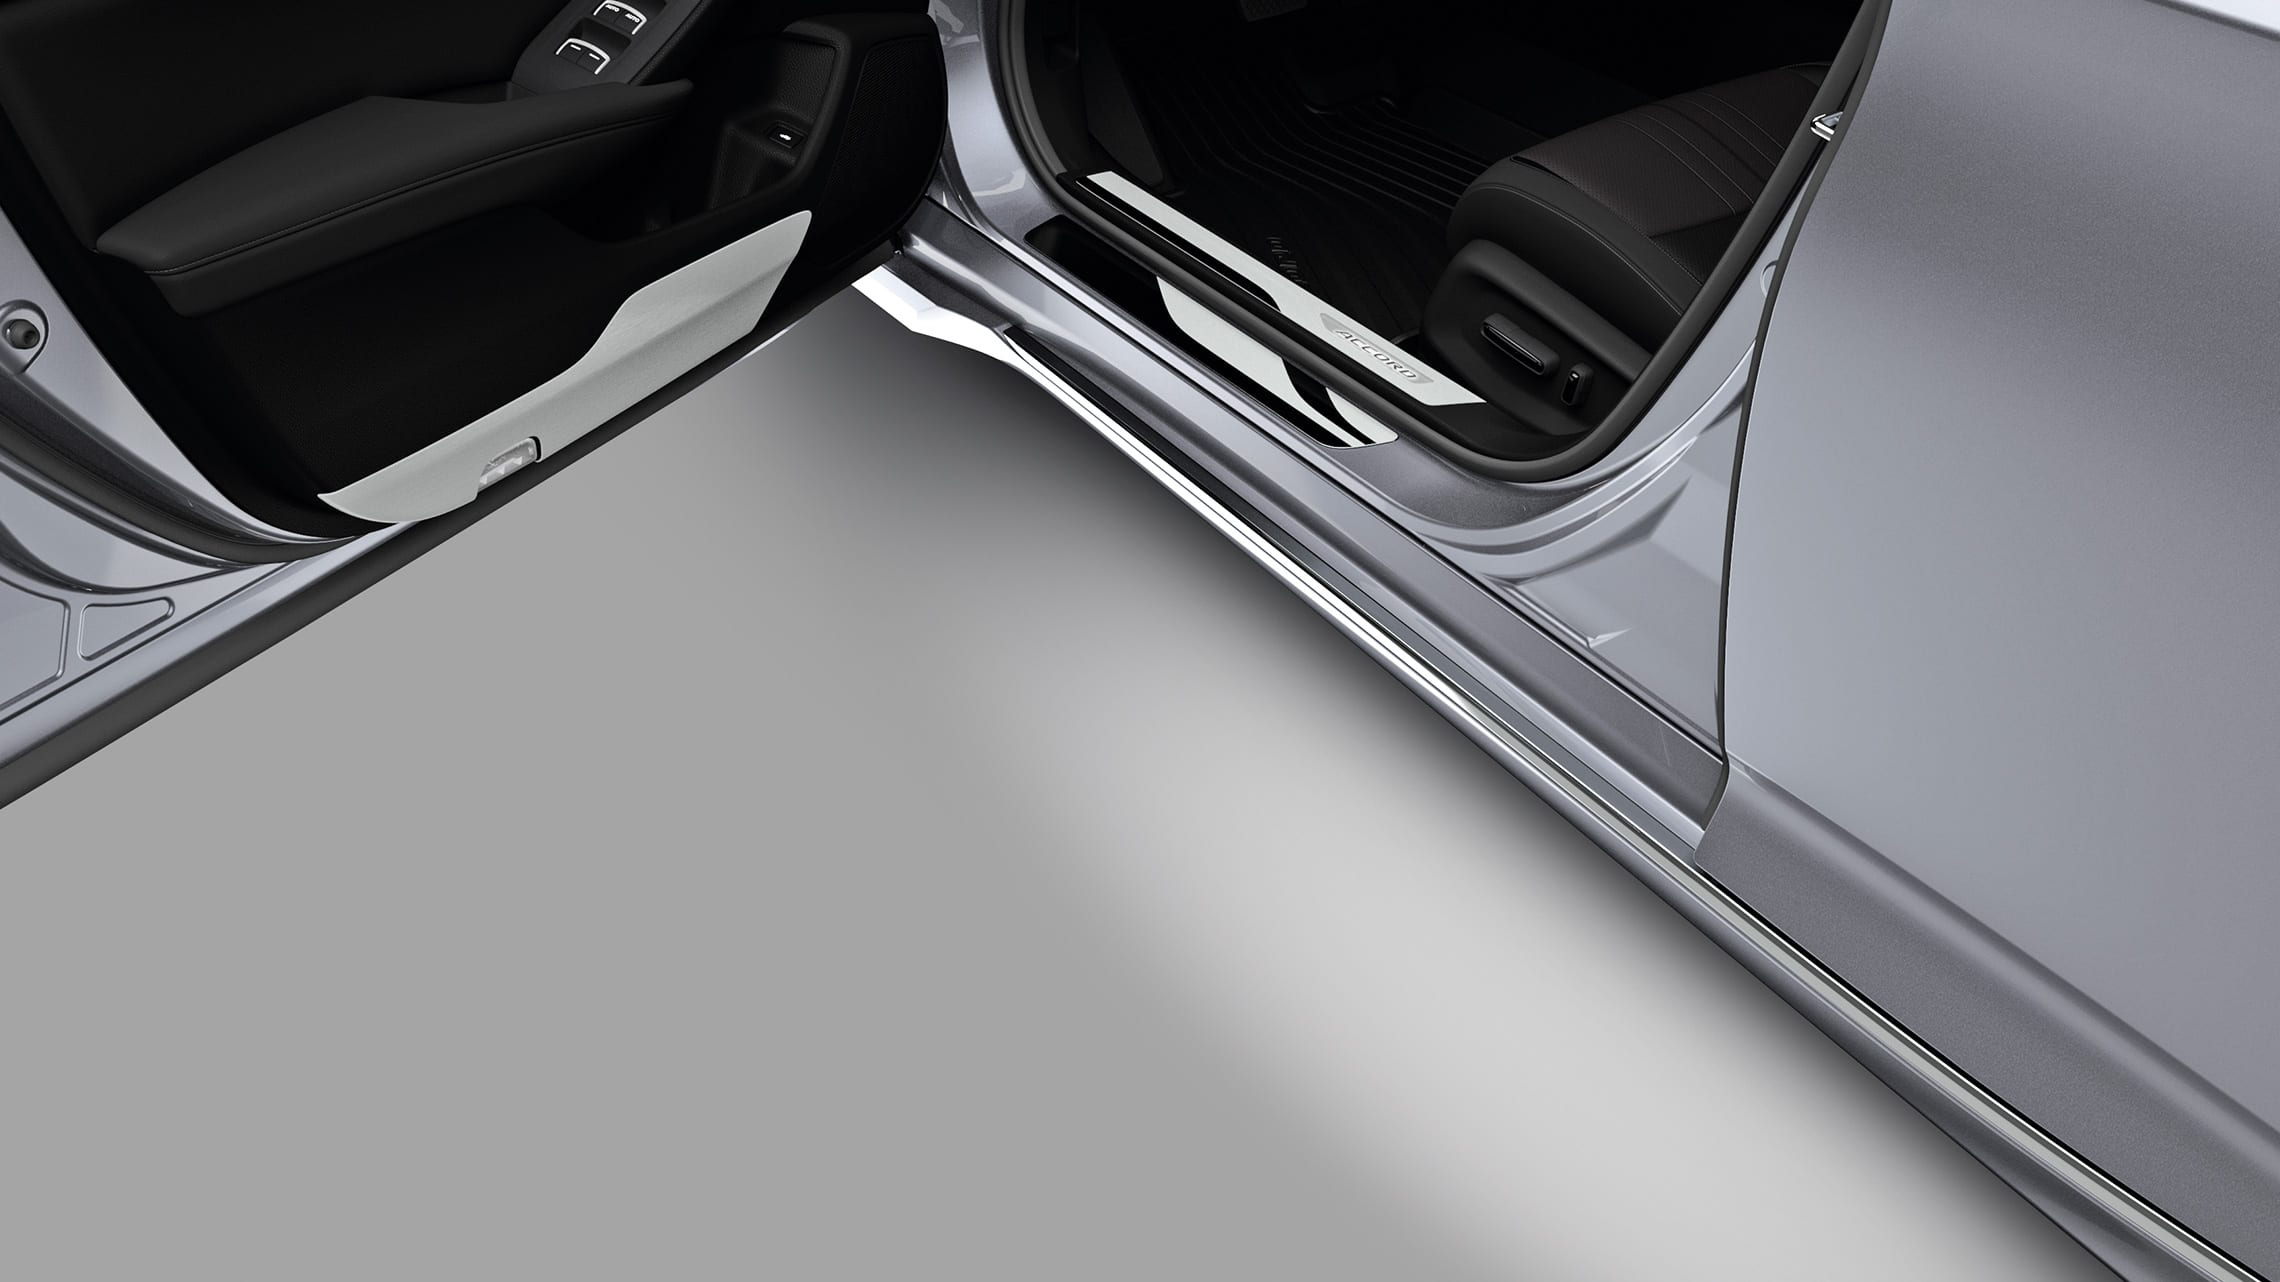 Puddle light detail with driver-side door open on the 2020 Honda Accord.